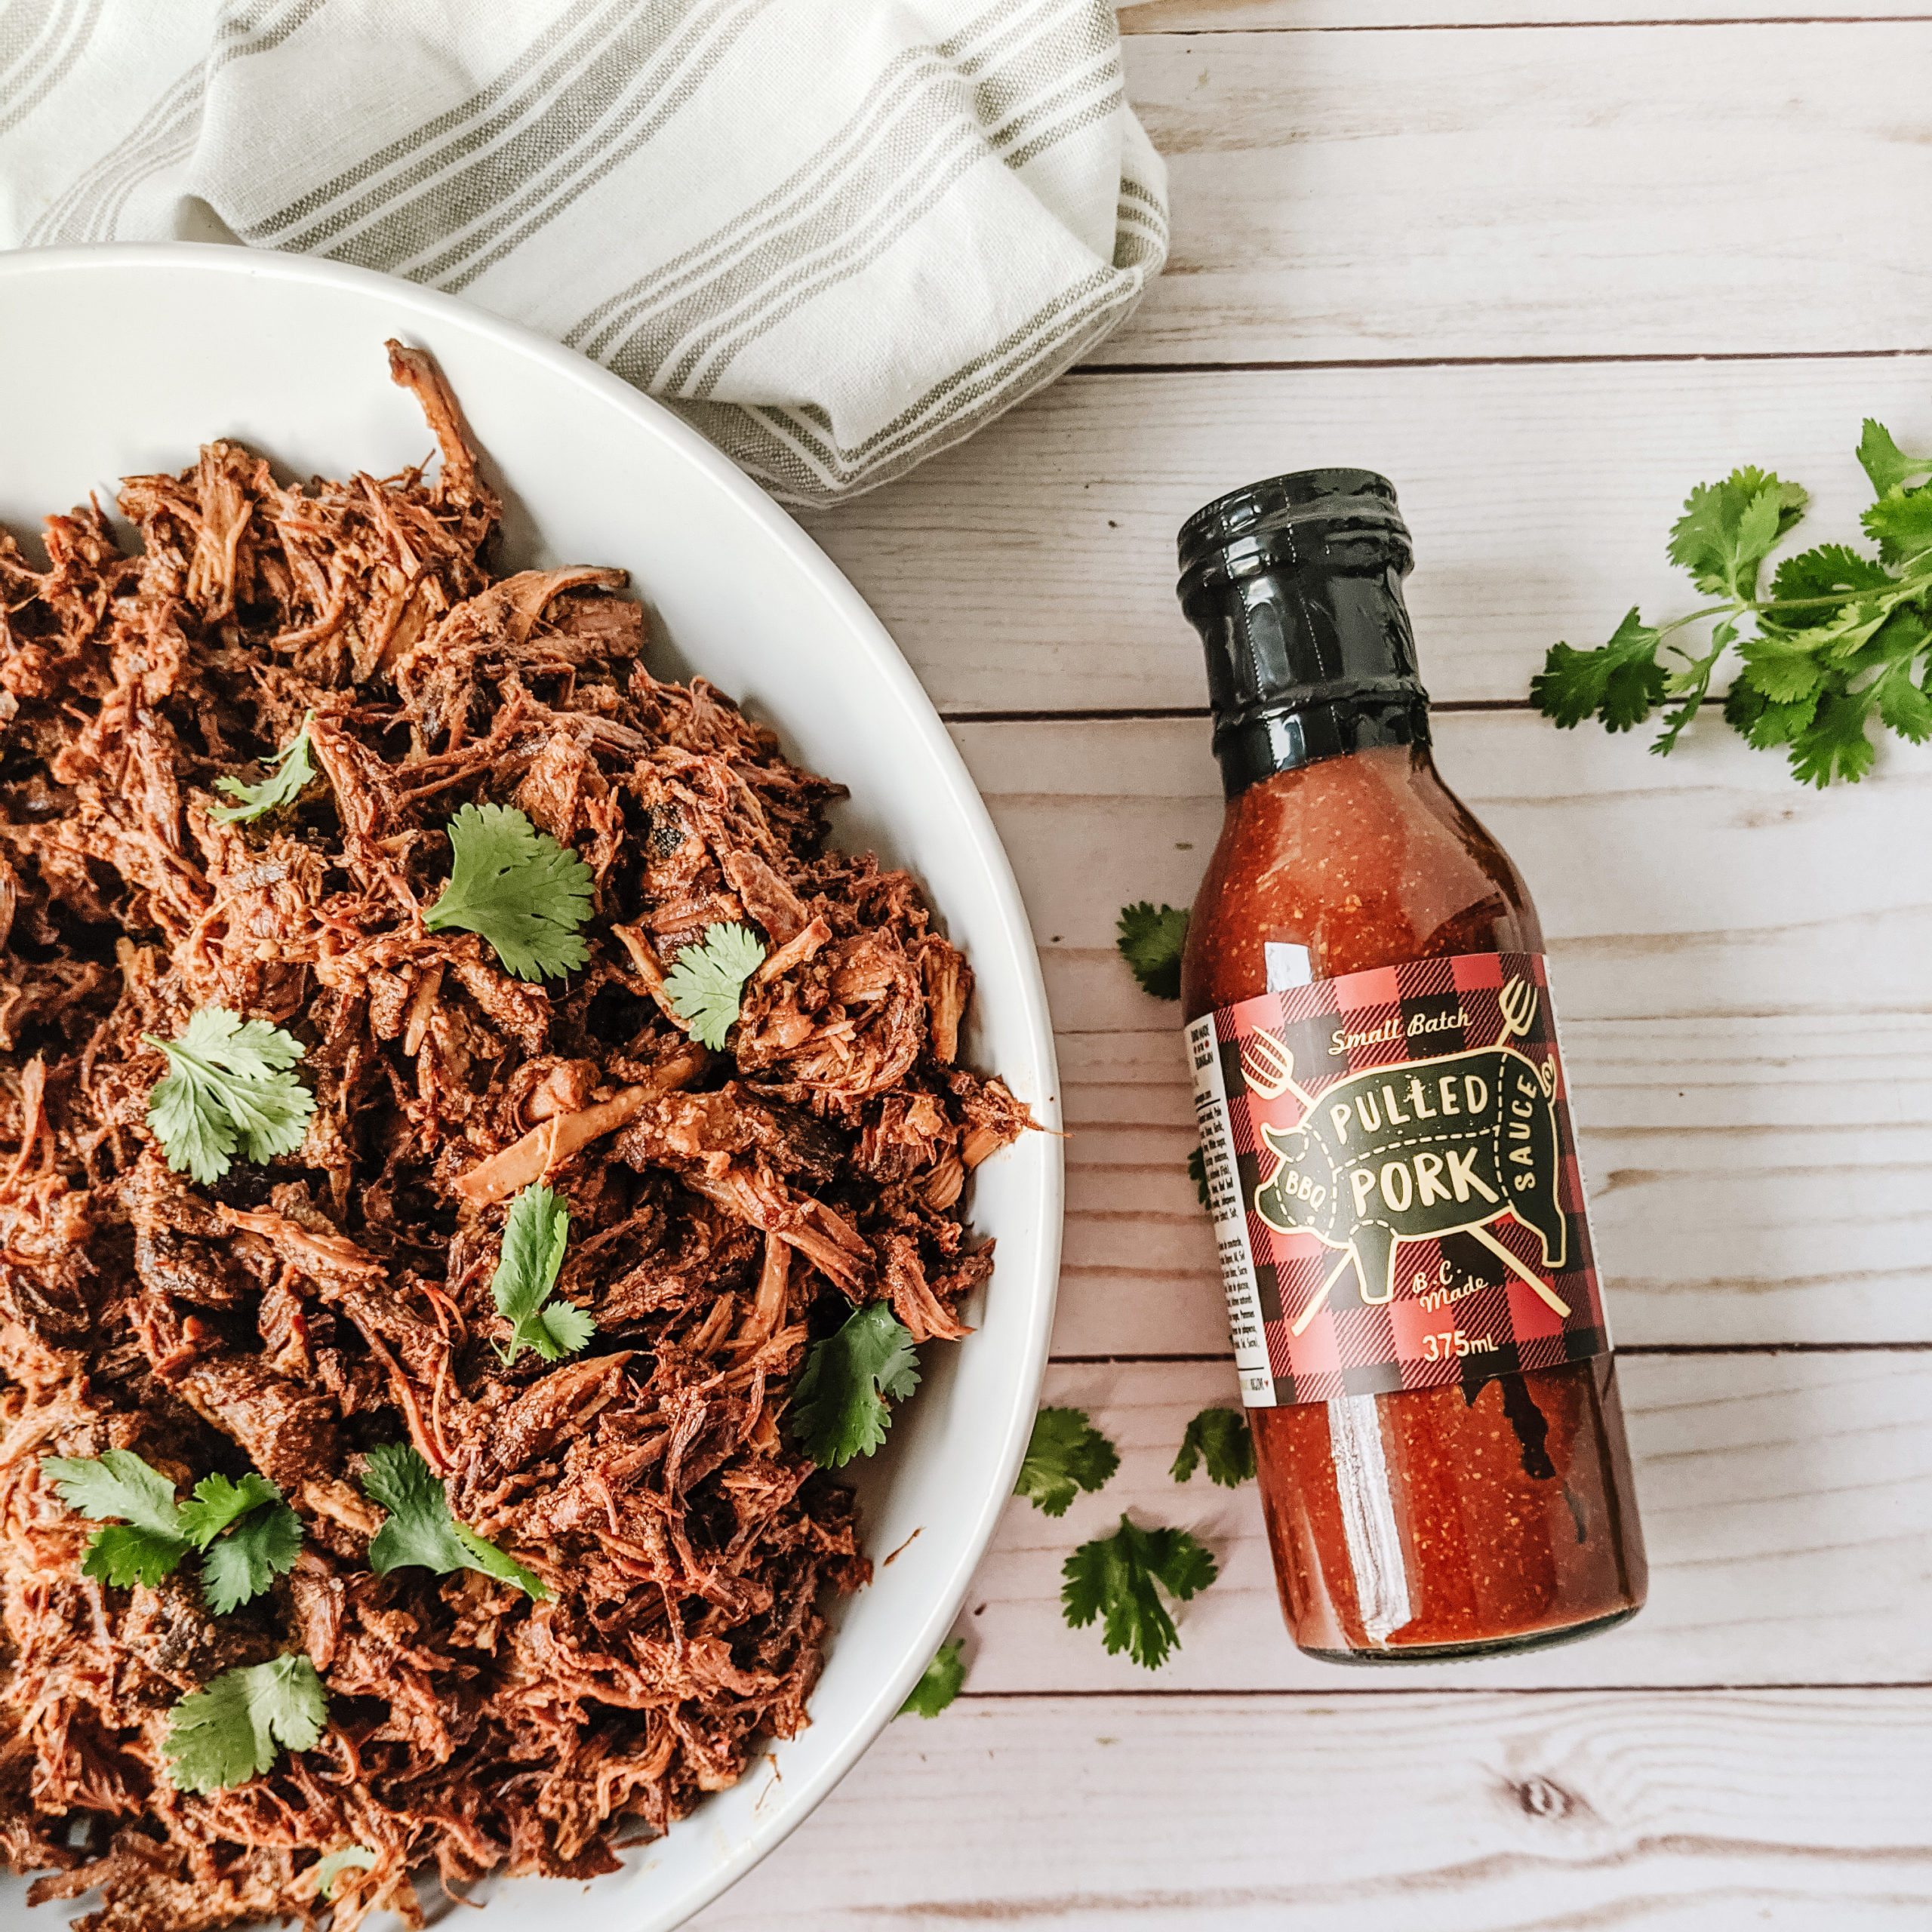 Pulled Pork Sauce for easy pulled pork sandwiches in your slow cooker